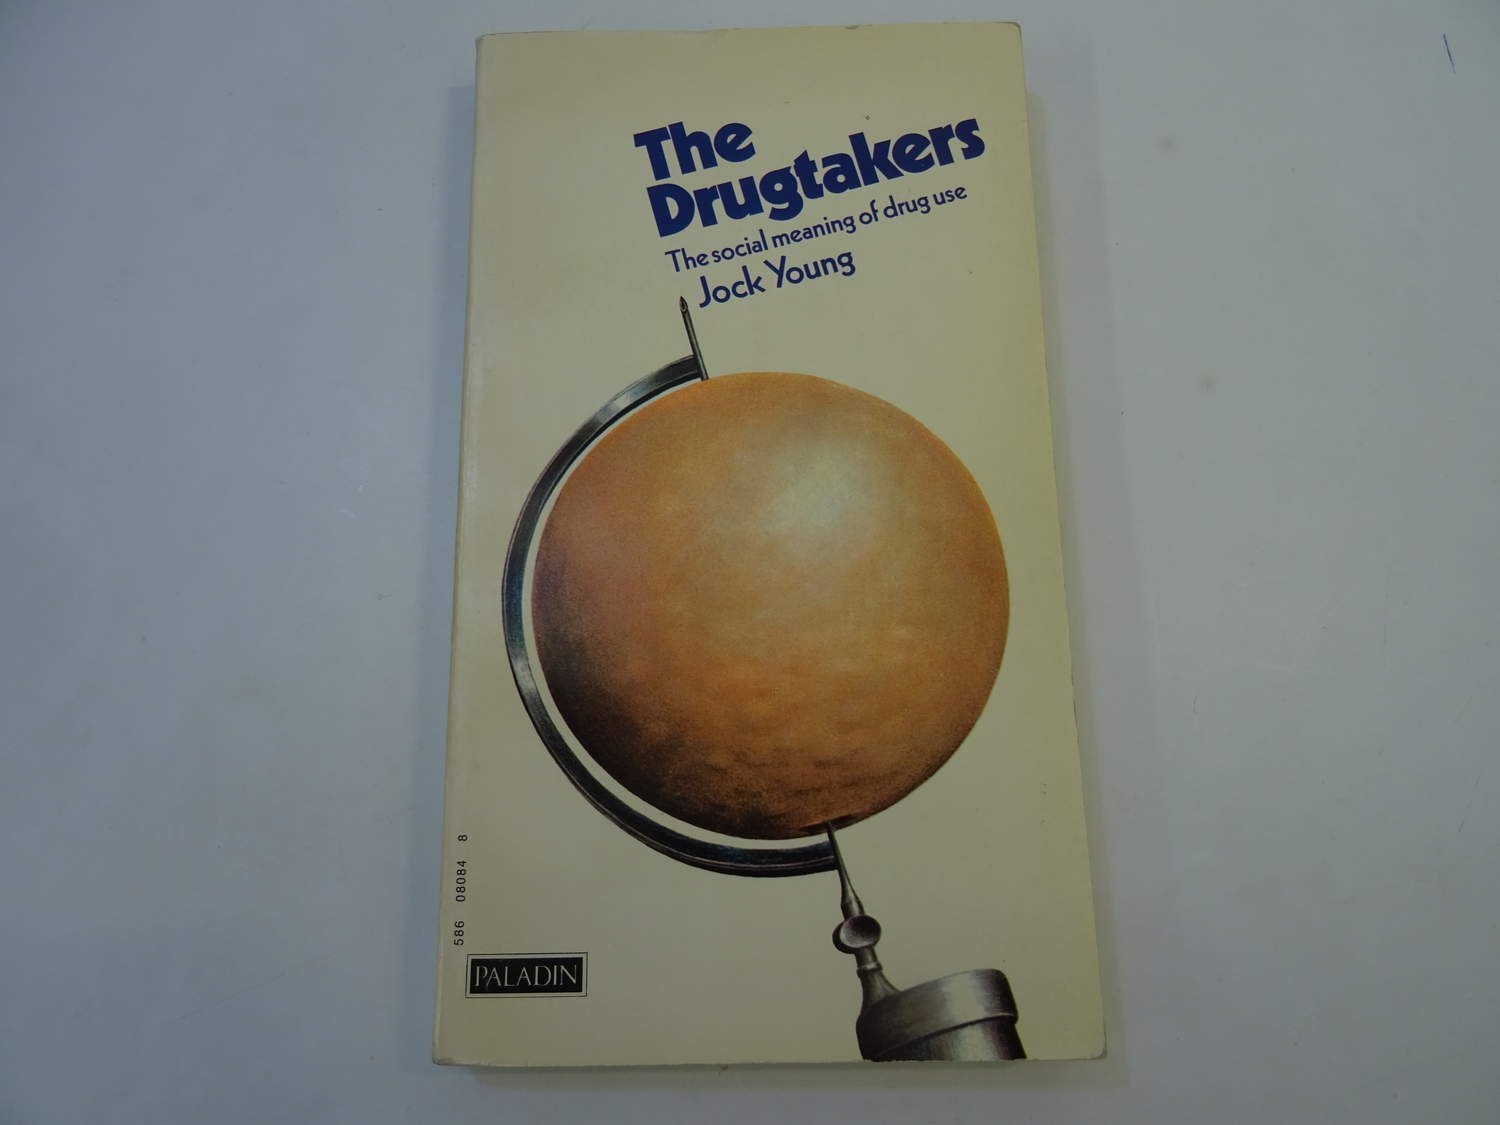 The Drugtakers: The Social Meaning of Drug Use